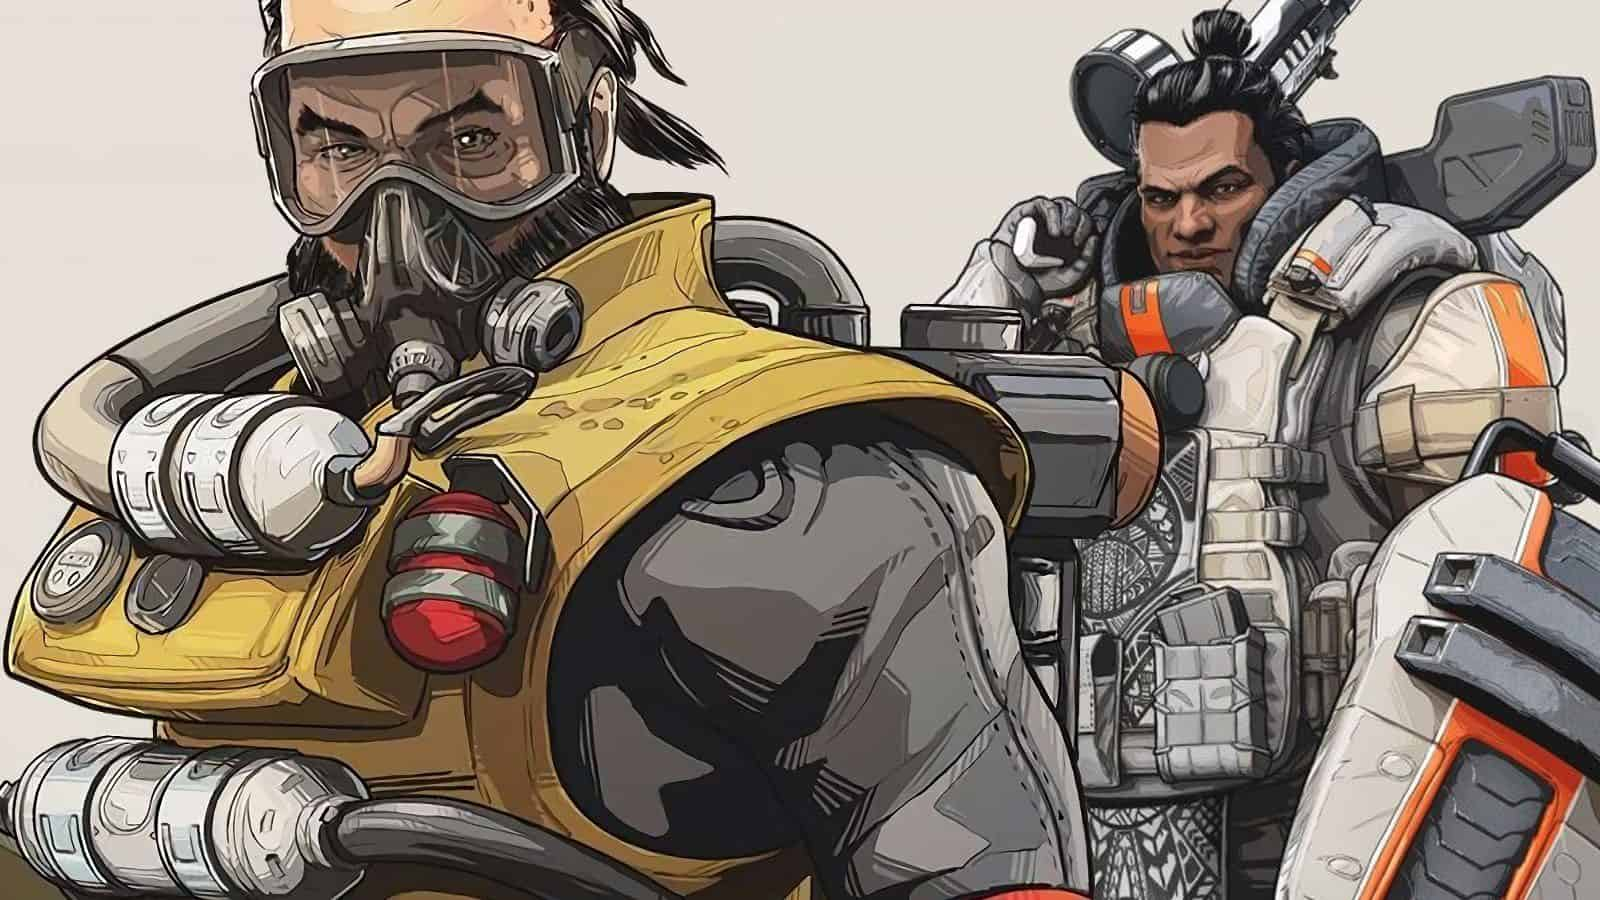 تحديث ابيكس ليجندز 1.1 caustic-gibraltar buff apex legends update